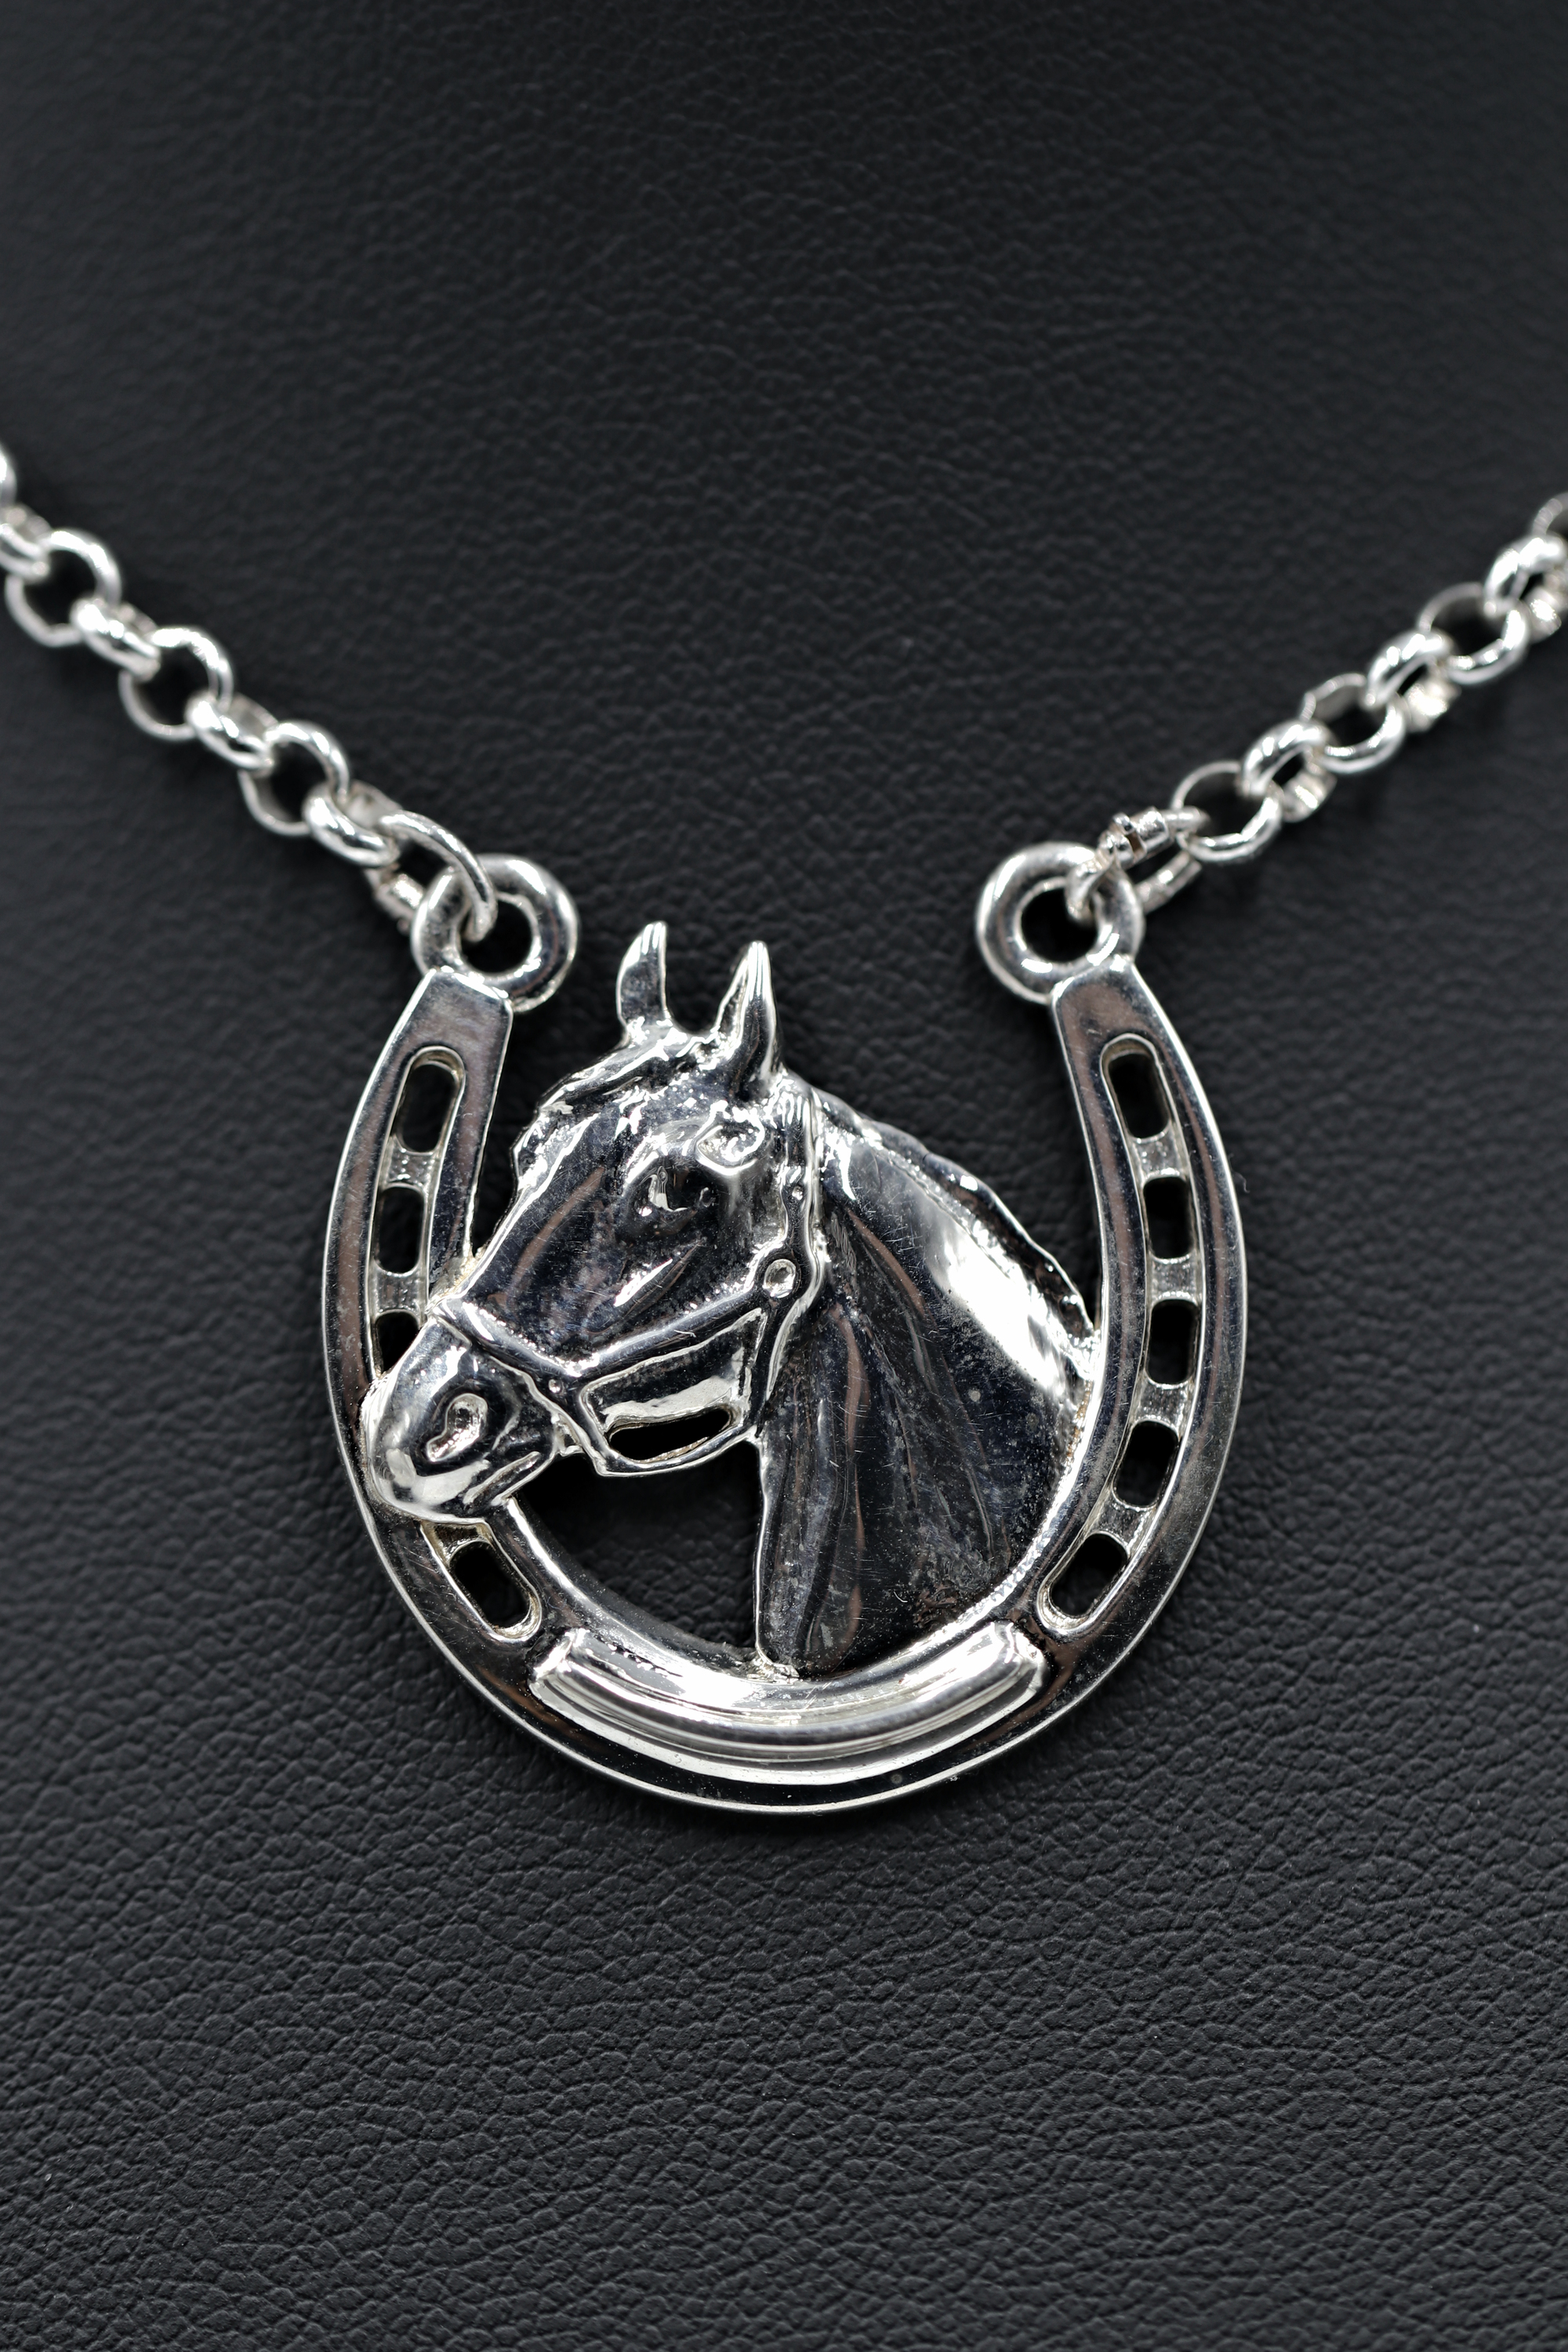 Stephen johnson sterling silver horsehead on horseshow high finish 150 incl chain lkooez